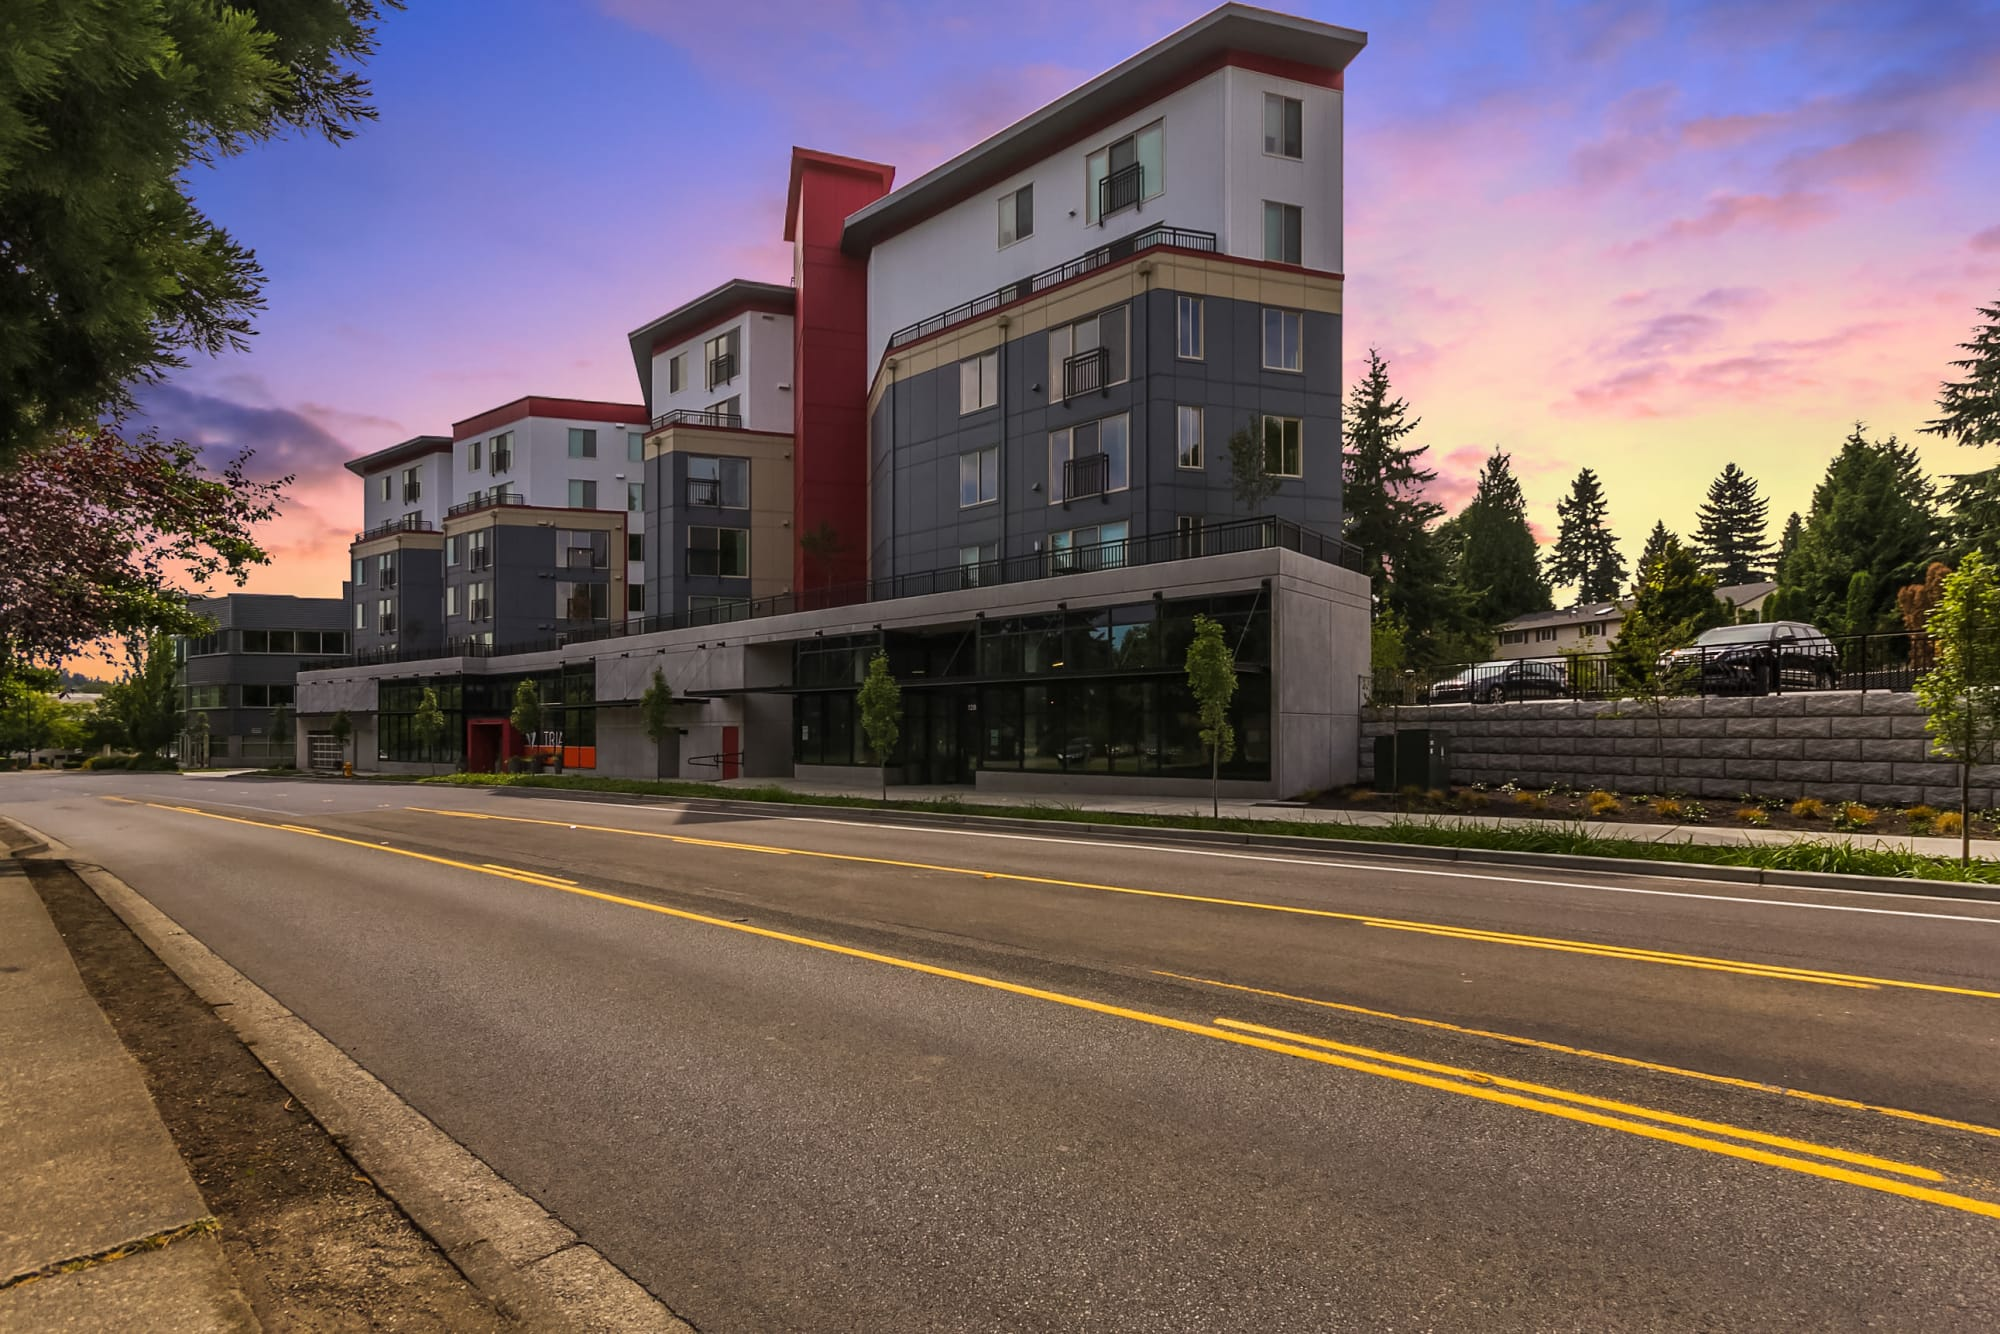 Exterior view of buildings at sunset of Tria Apartments in Newcastle